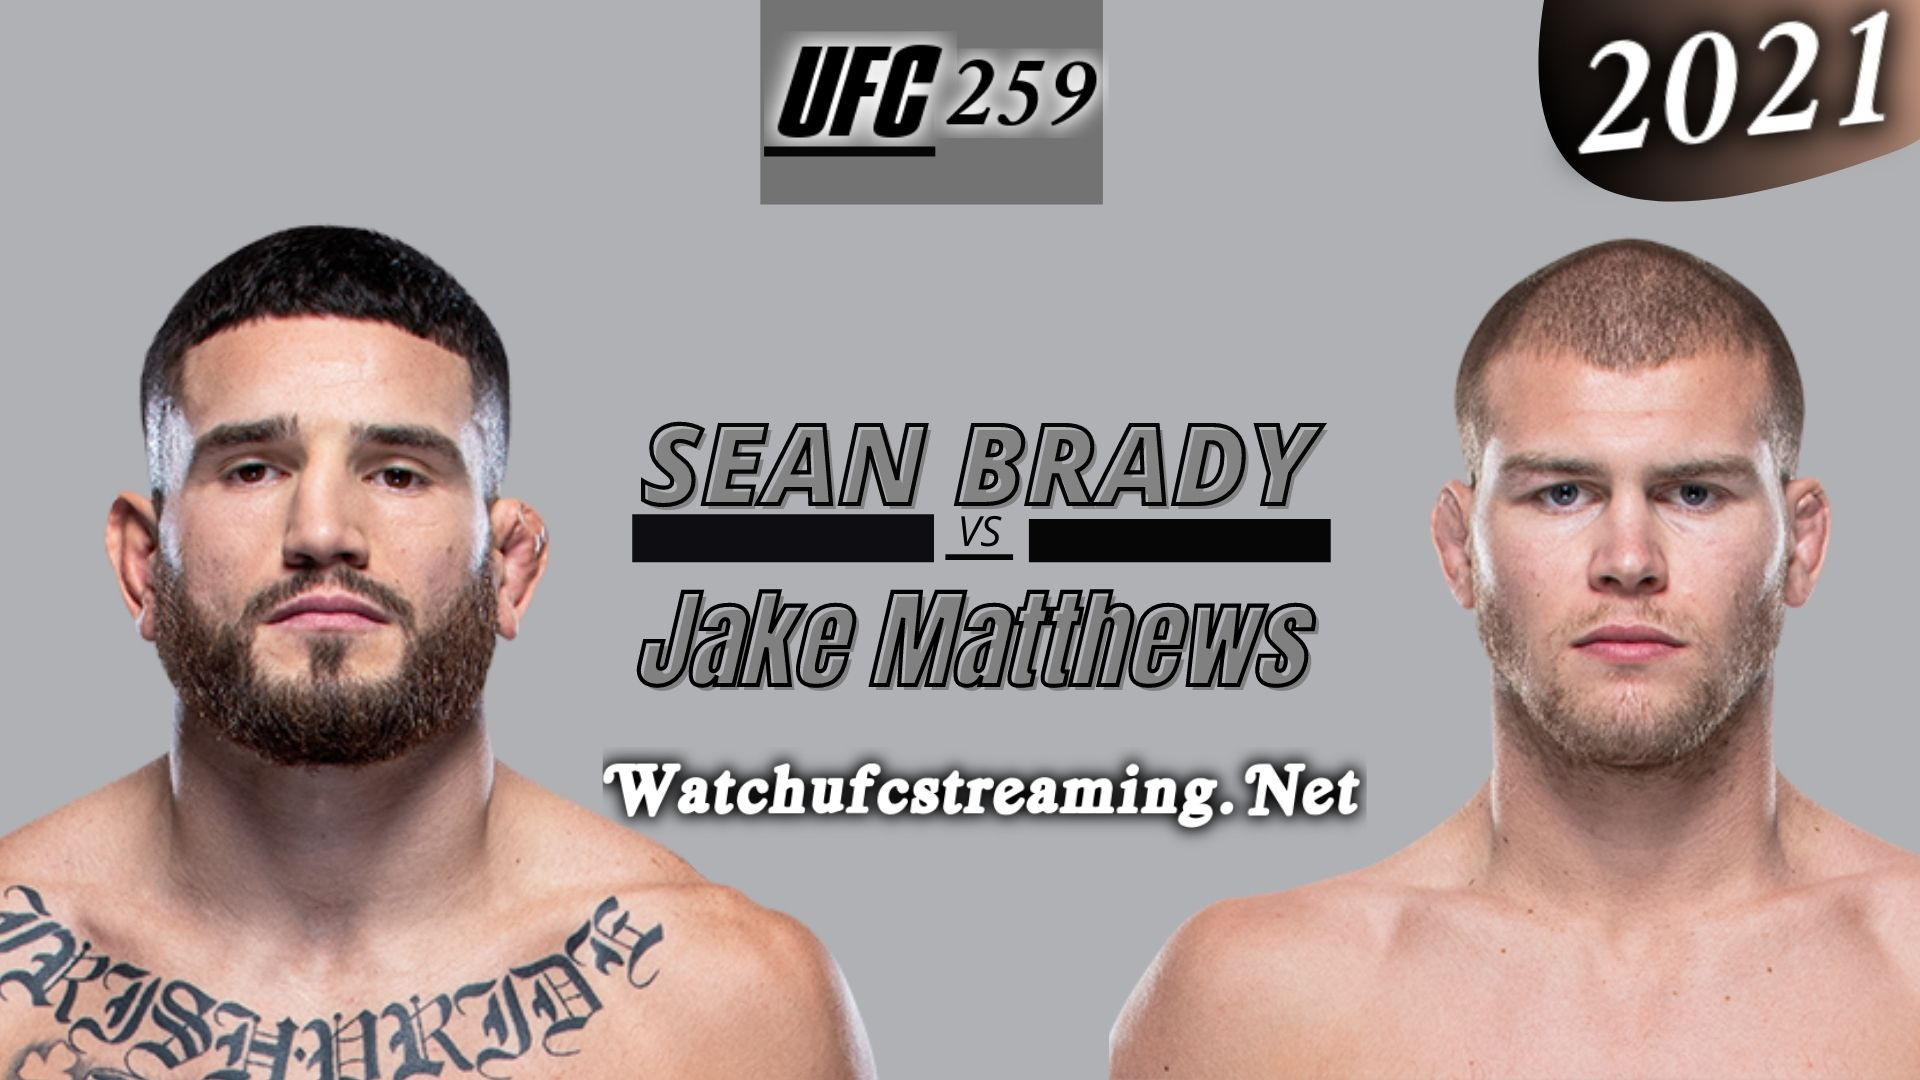 UFC 259: Sean Brady Vs Jake Matthews Highlights 2021 | Welterweight